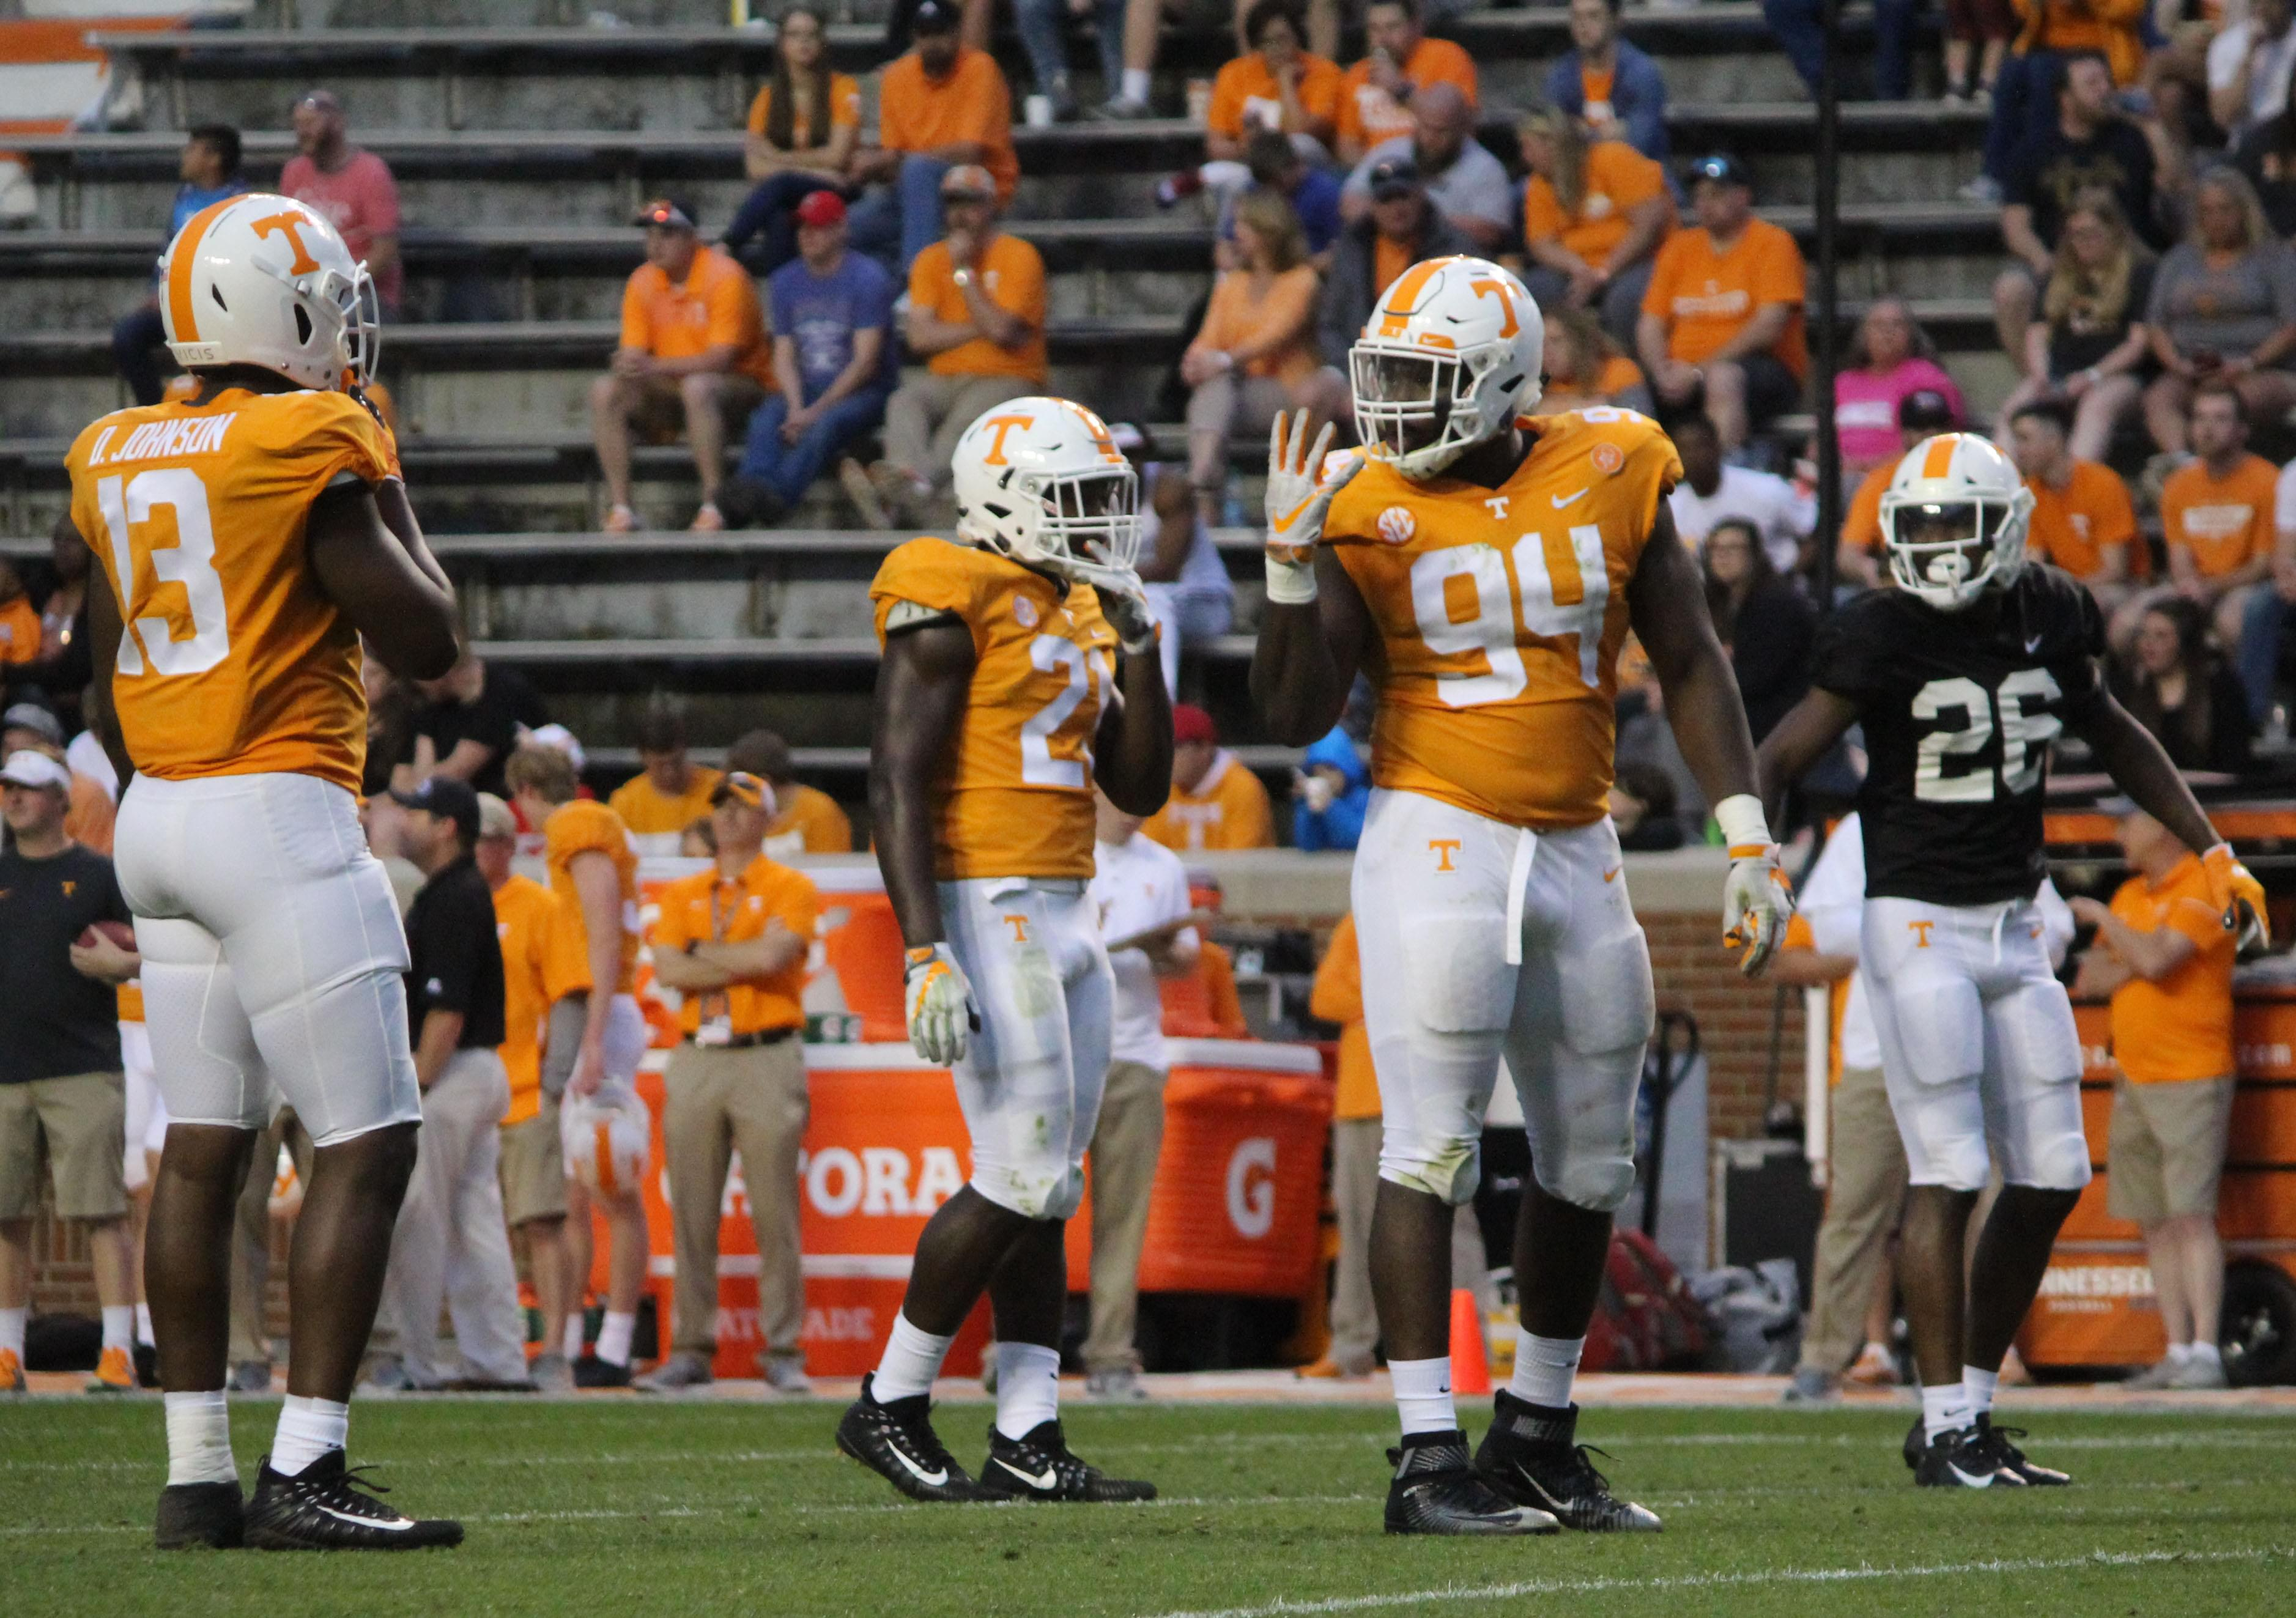 Cainer's Corner: Vols Get A Win Before Season Kickoff